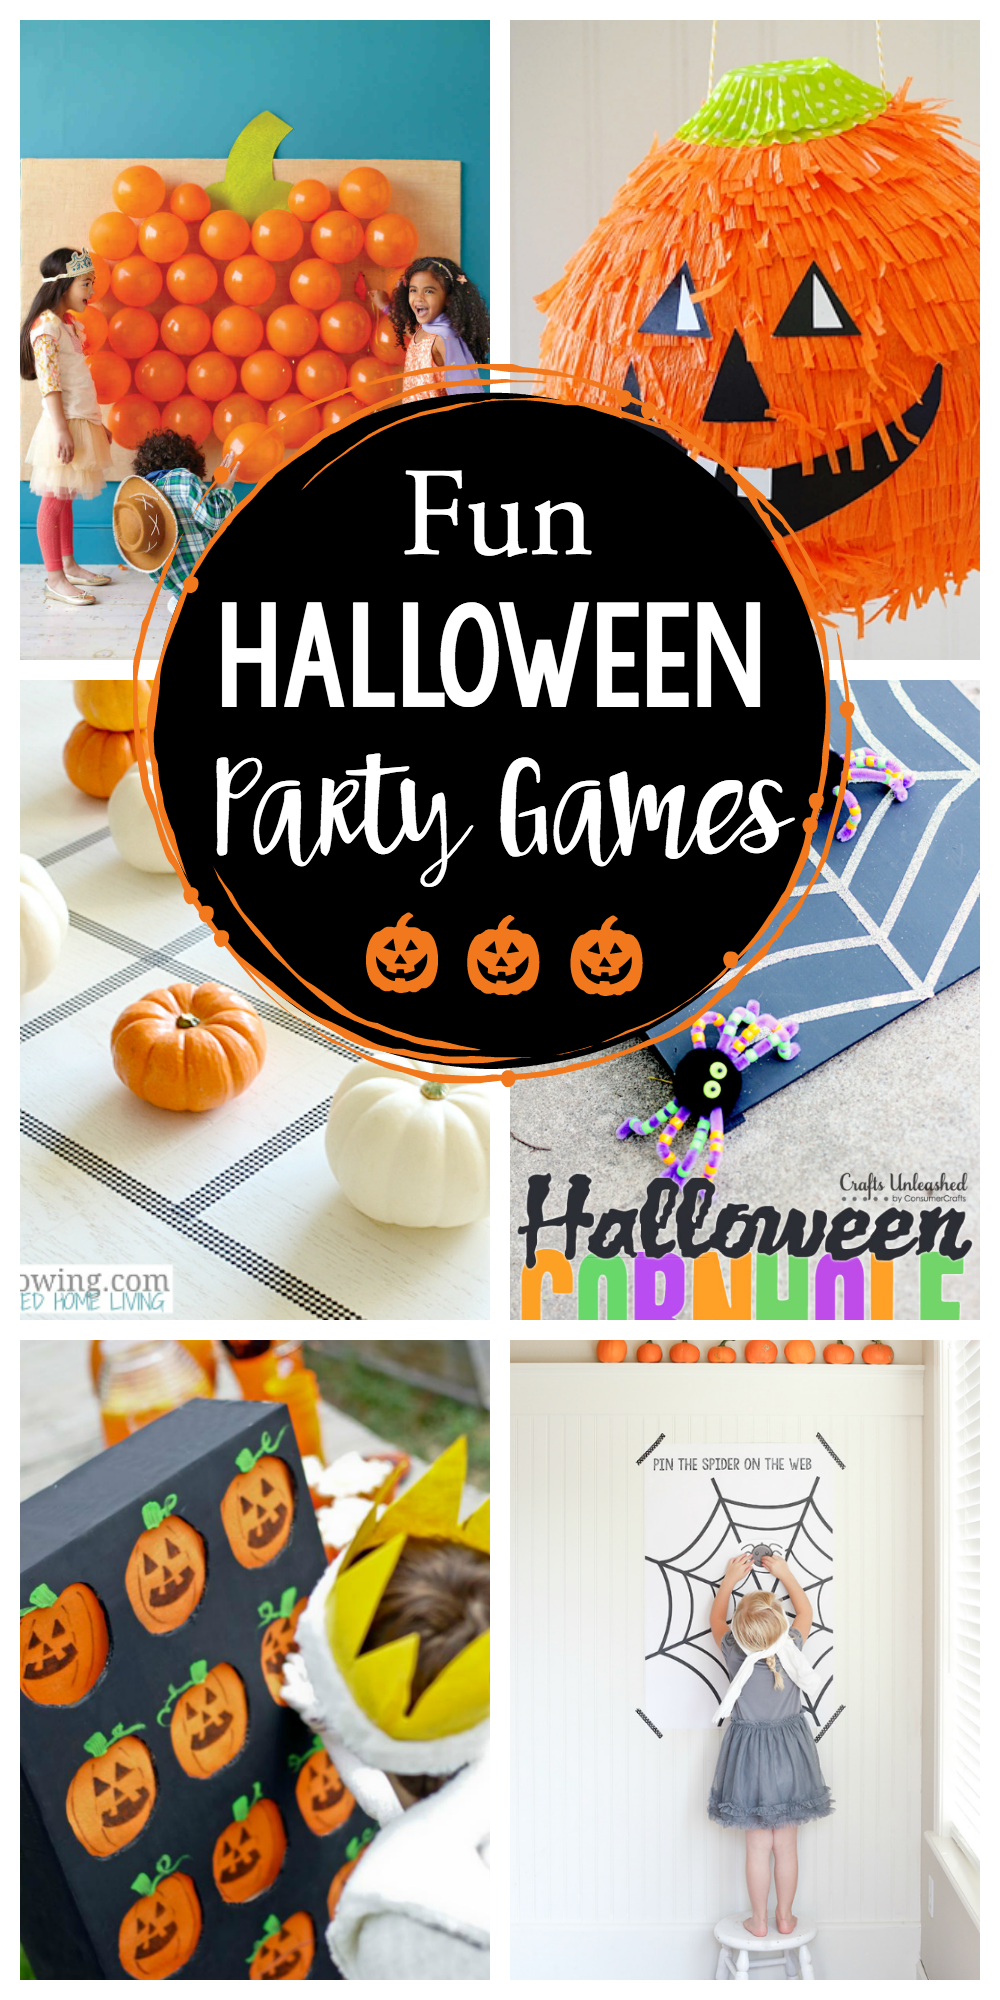 25 fun halloween party games | fun-squared favorites | pinterest